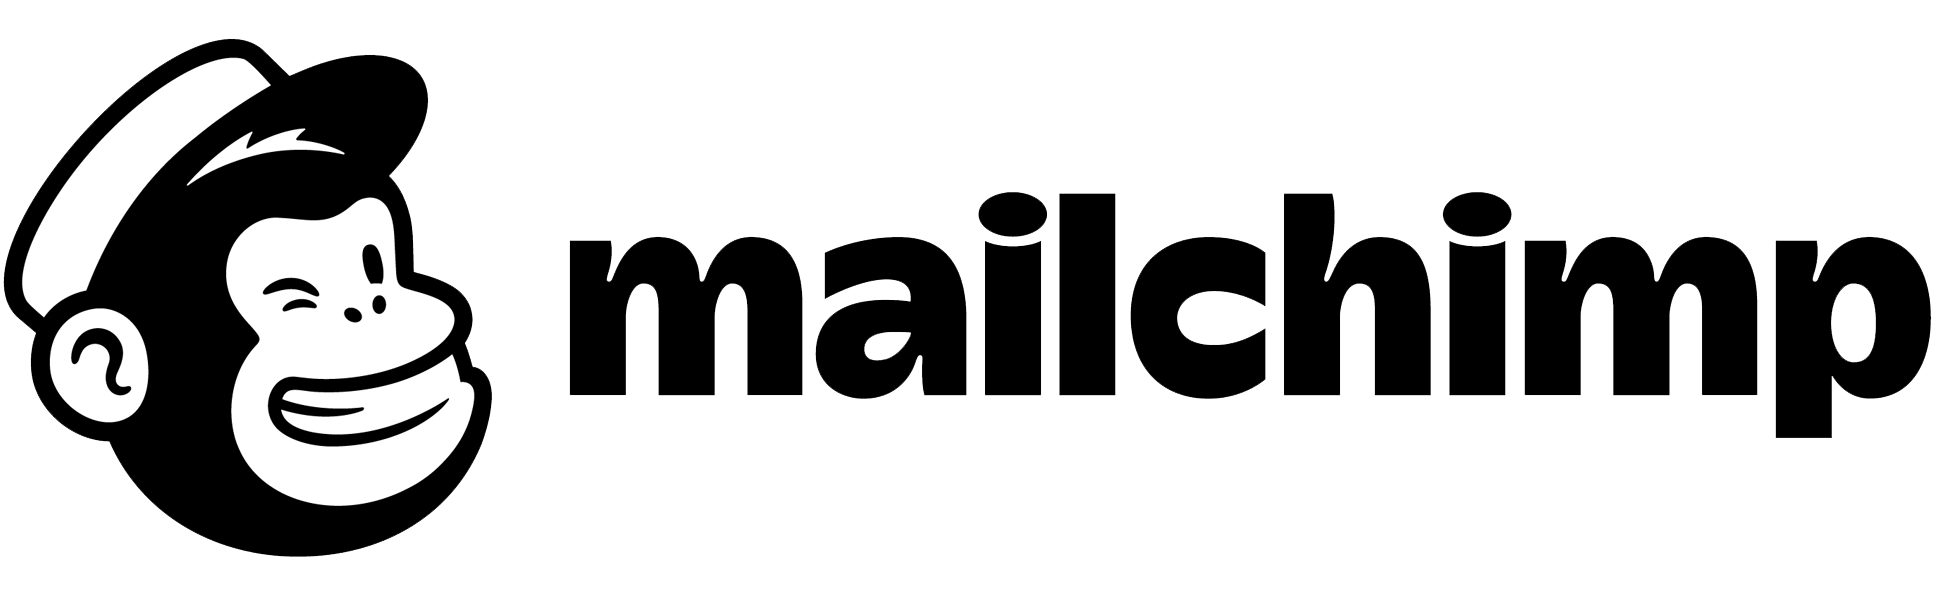 integrates with mailchimp